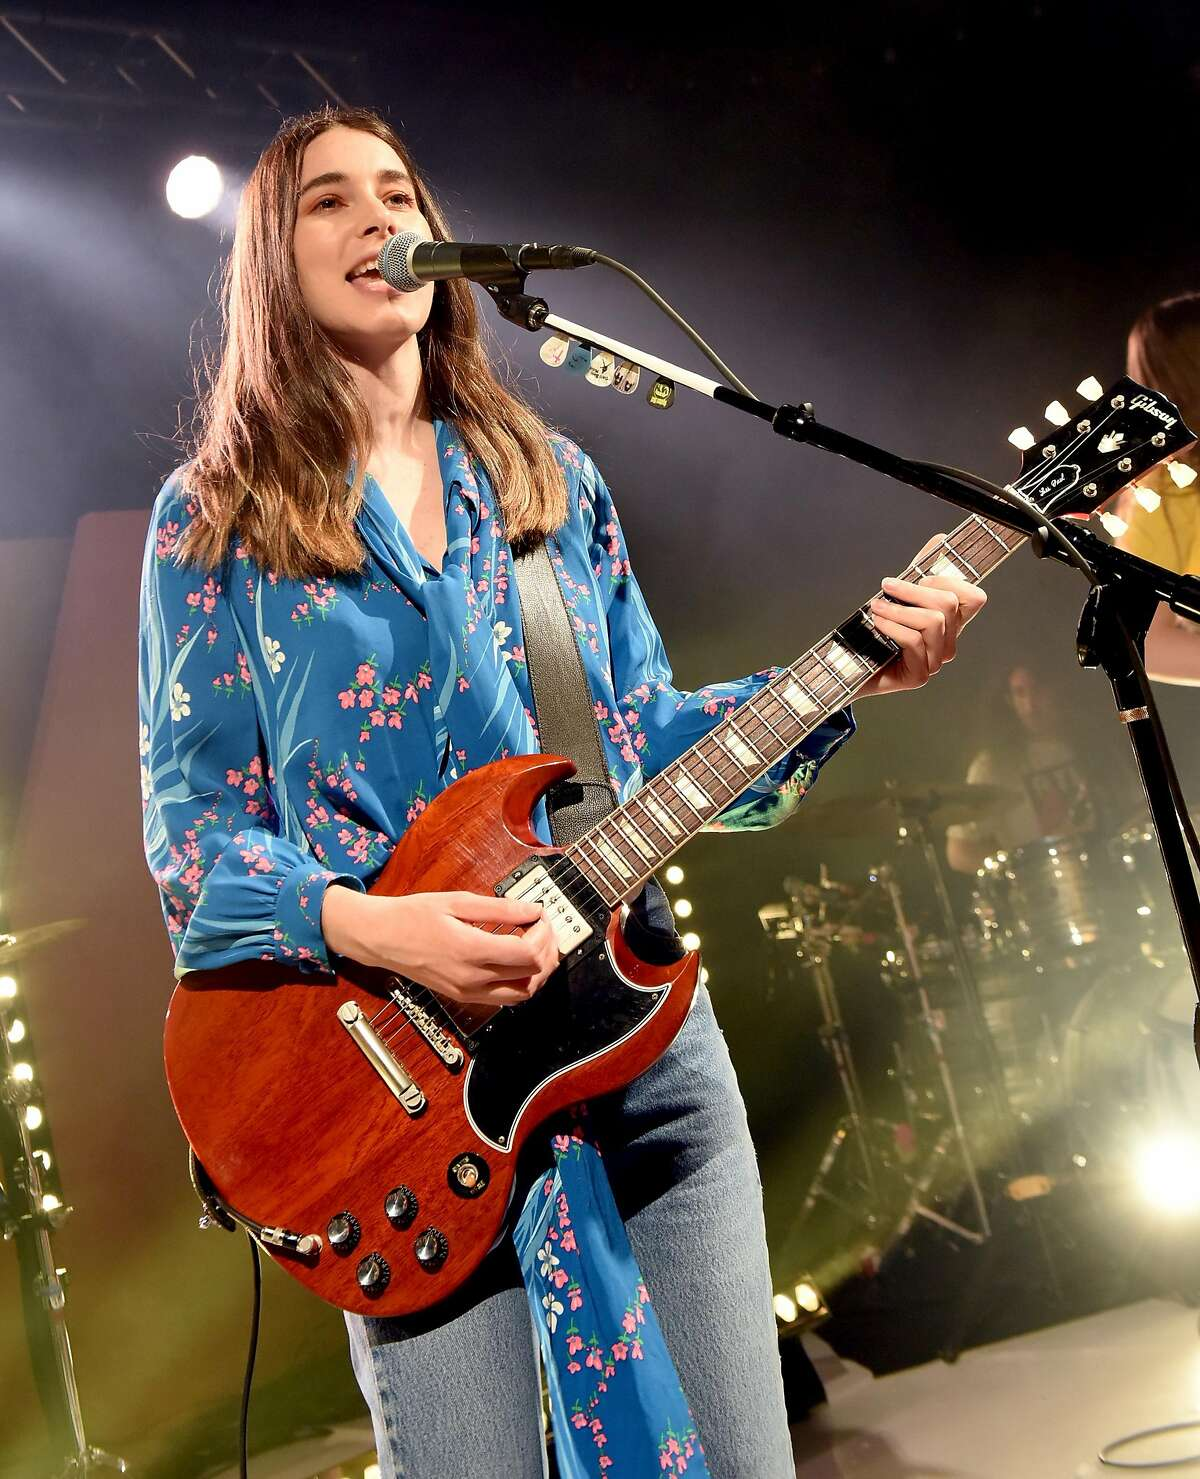 AUSTIN, TX - MARCH 10: Danielle Haim of HAIM performs onstage during Bumble Presents: Empowering Connections at Fair Market on March 10, 2018 in Austin, Texas. (Photo by Vivien Killilea/Getty Images for Bumble)